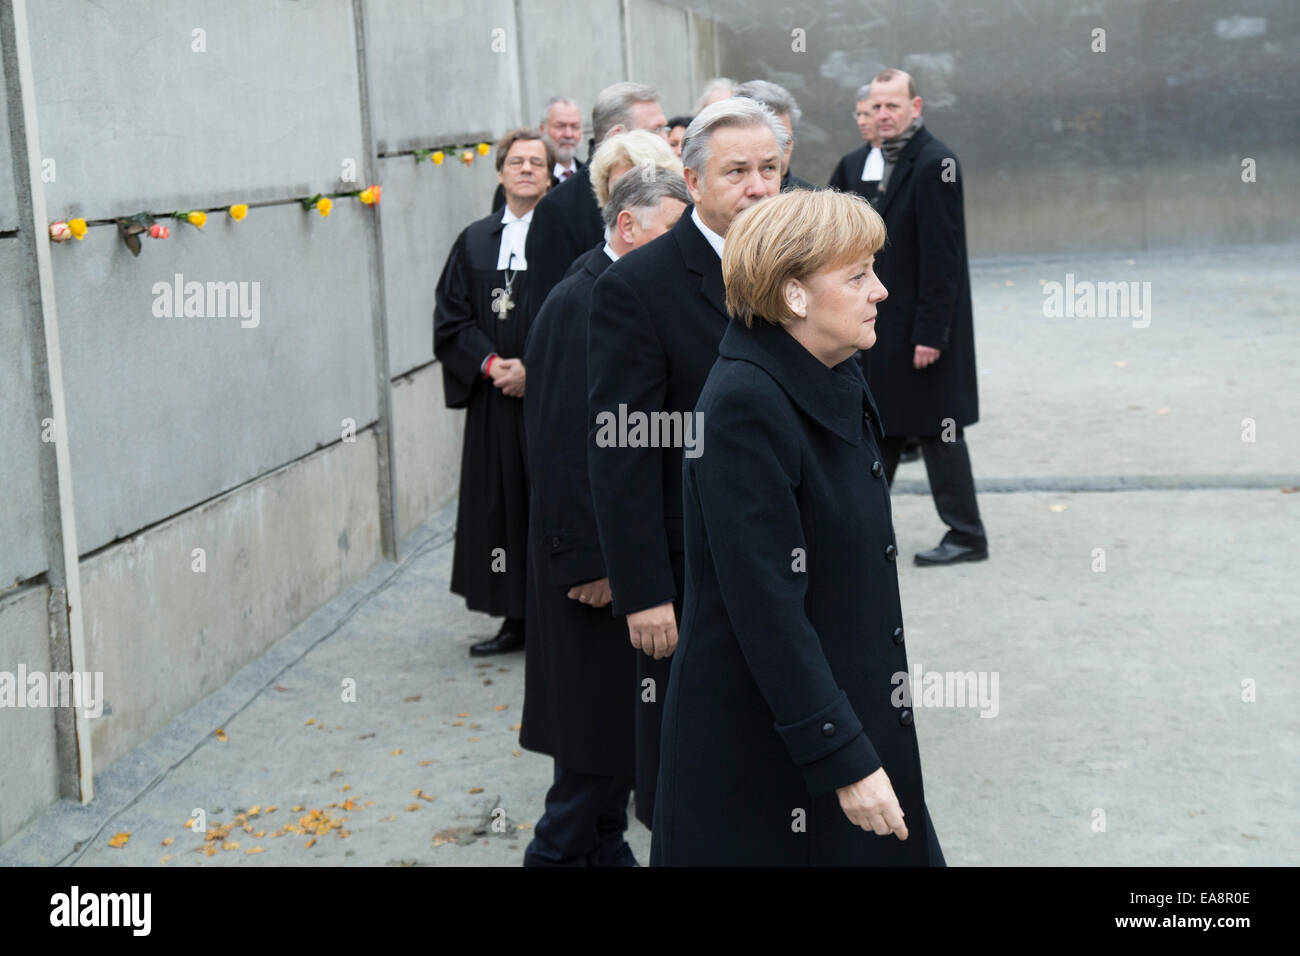 Chancellor Angela Merkel (CDU),and Klaus Wowereit  between others celebrits laying roses at Berlin Wall Memorial Stock Photo